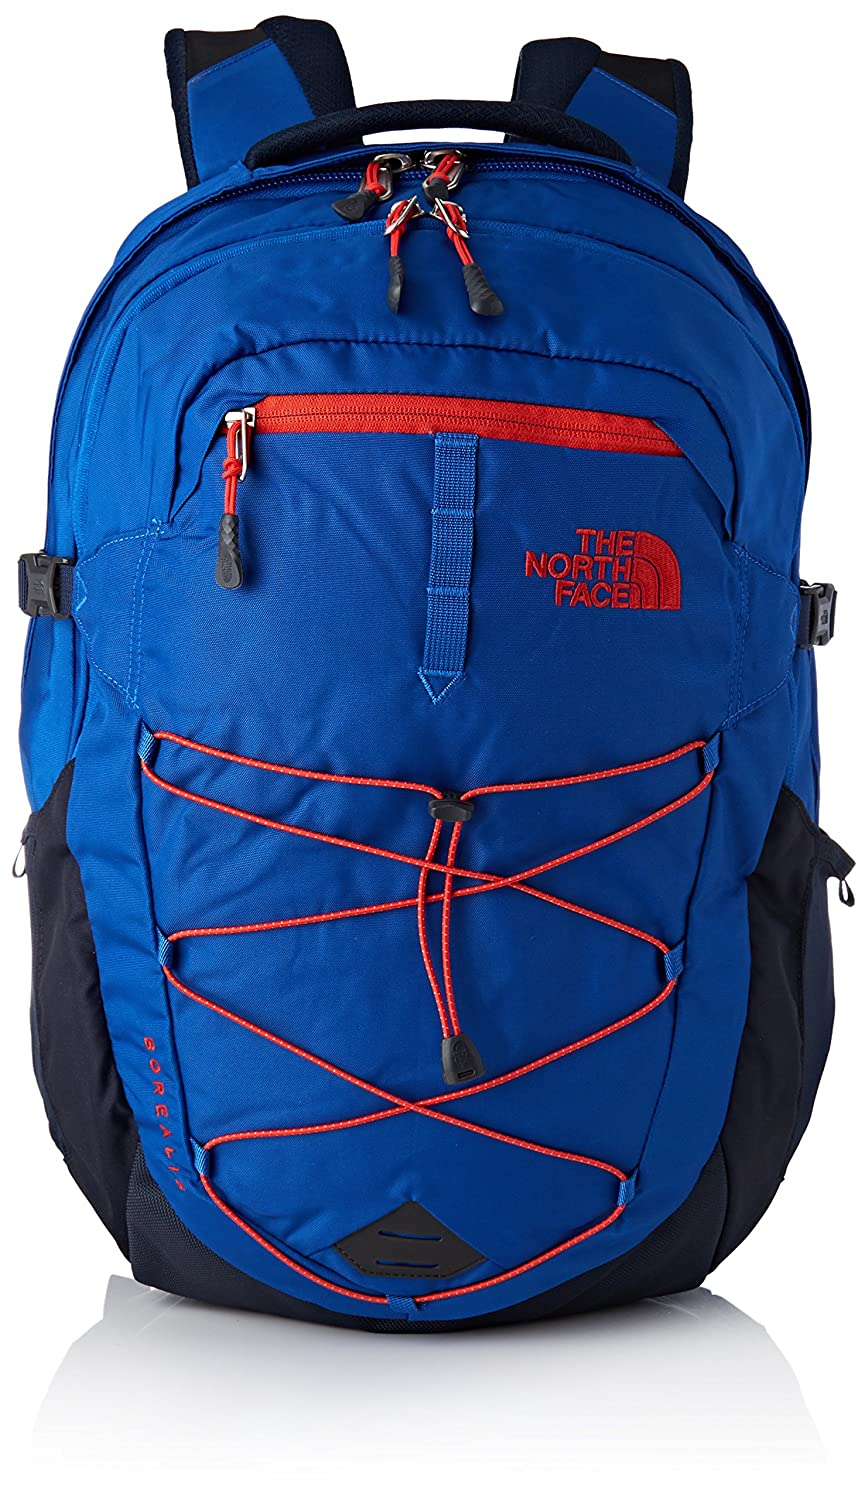 b8209ffb4 The North Face Borealis Men's Outdoor Backpack